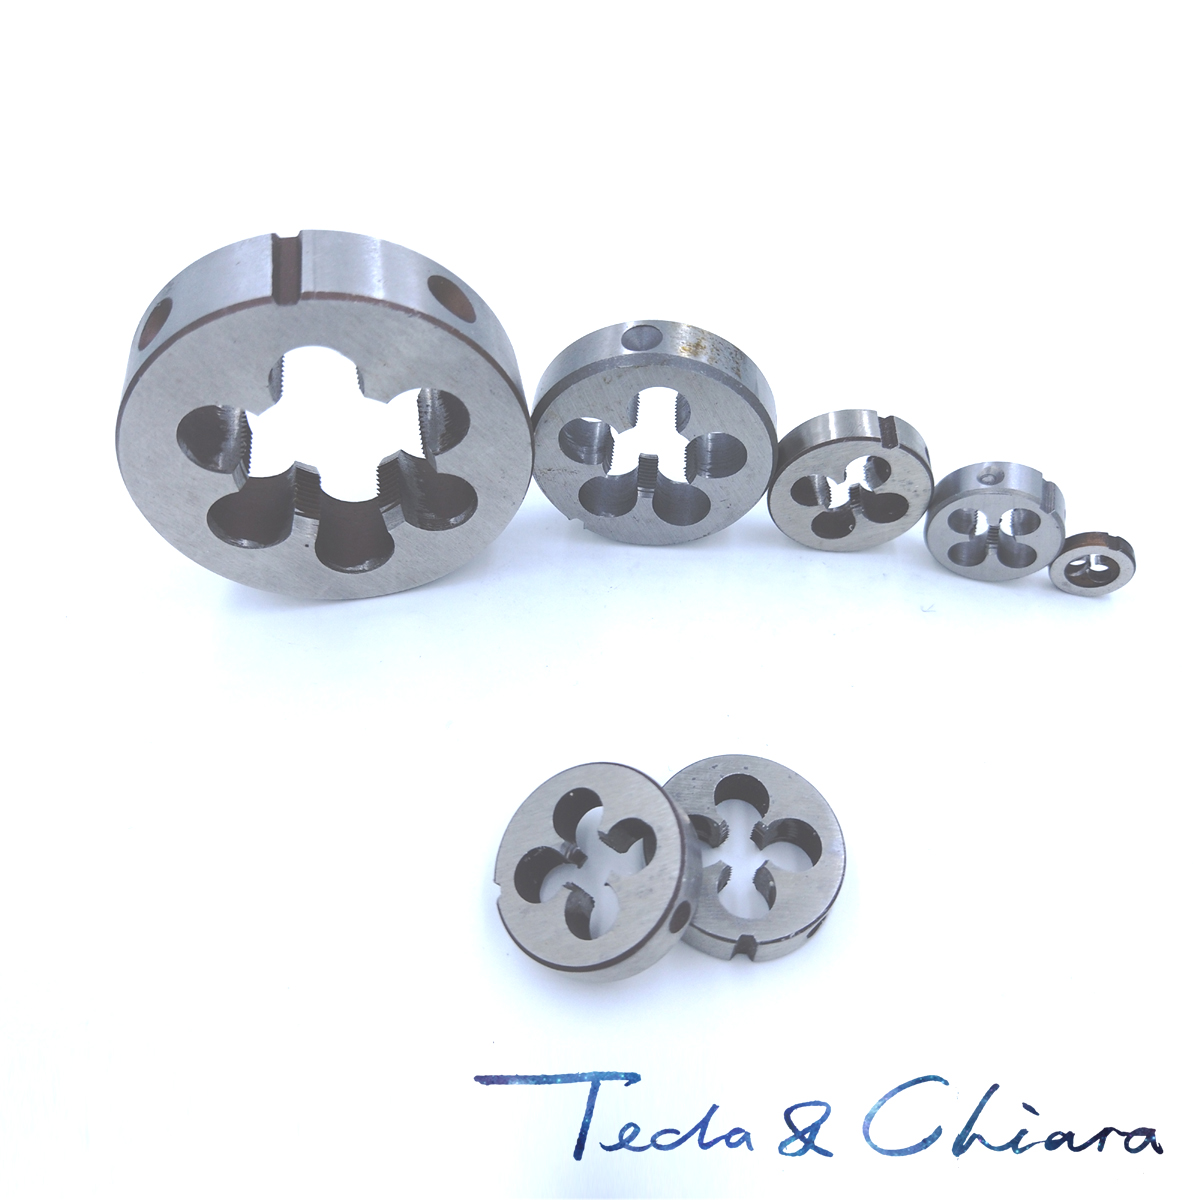 1Pc M16 M17 X 0.75mm 1mm 1.25mm 1.5mm 1.75mm 2mm Metric Right Hand Die Threading Tools For Mold Machining * 1 1.25 1.5 1.75 2